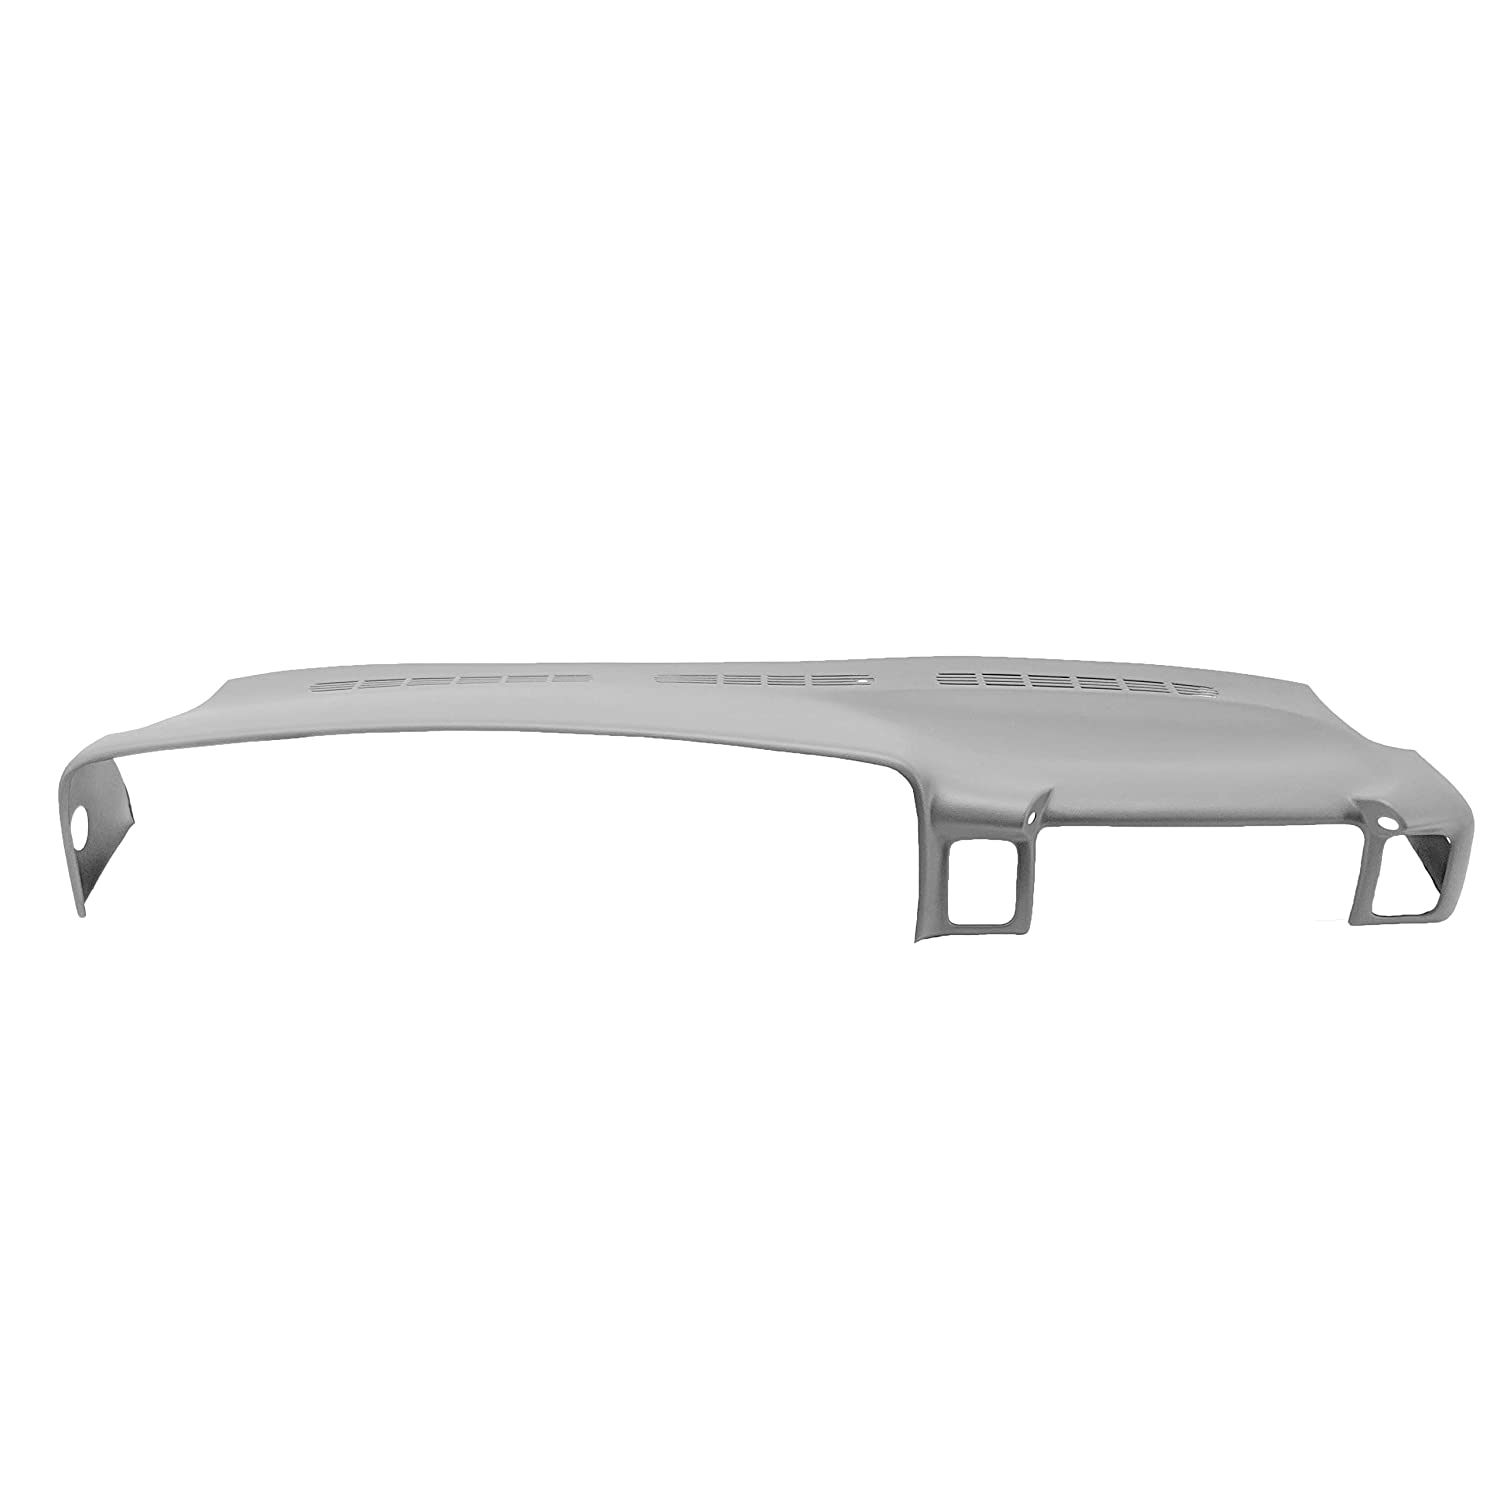 DashSkin Molded Dash Cover Compatible with 00-06 GM SUVs and 99-06 Pickups in Light Pewter Grey